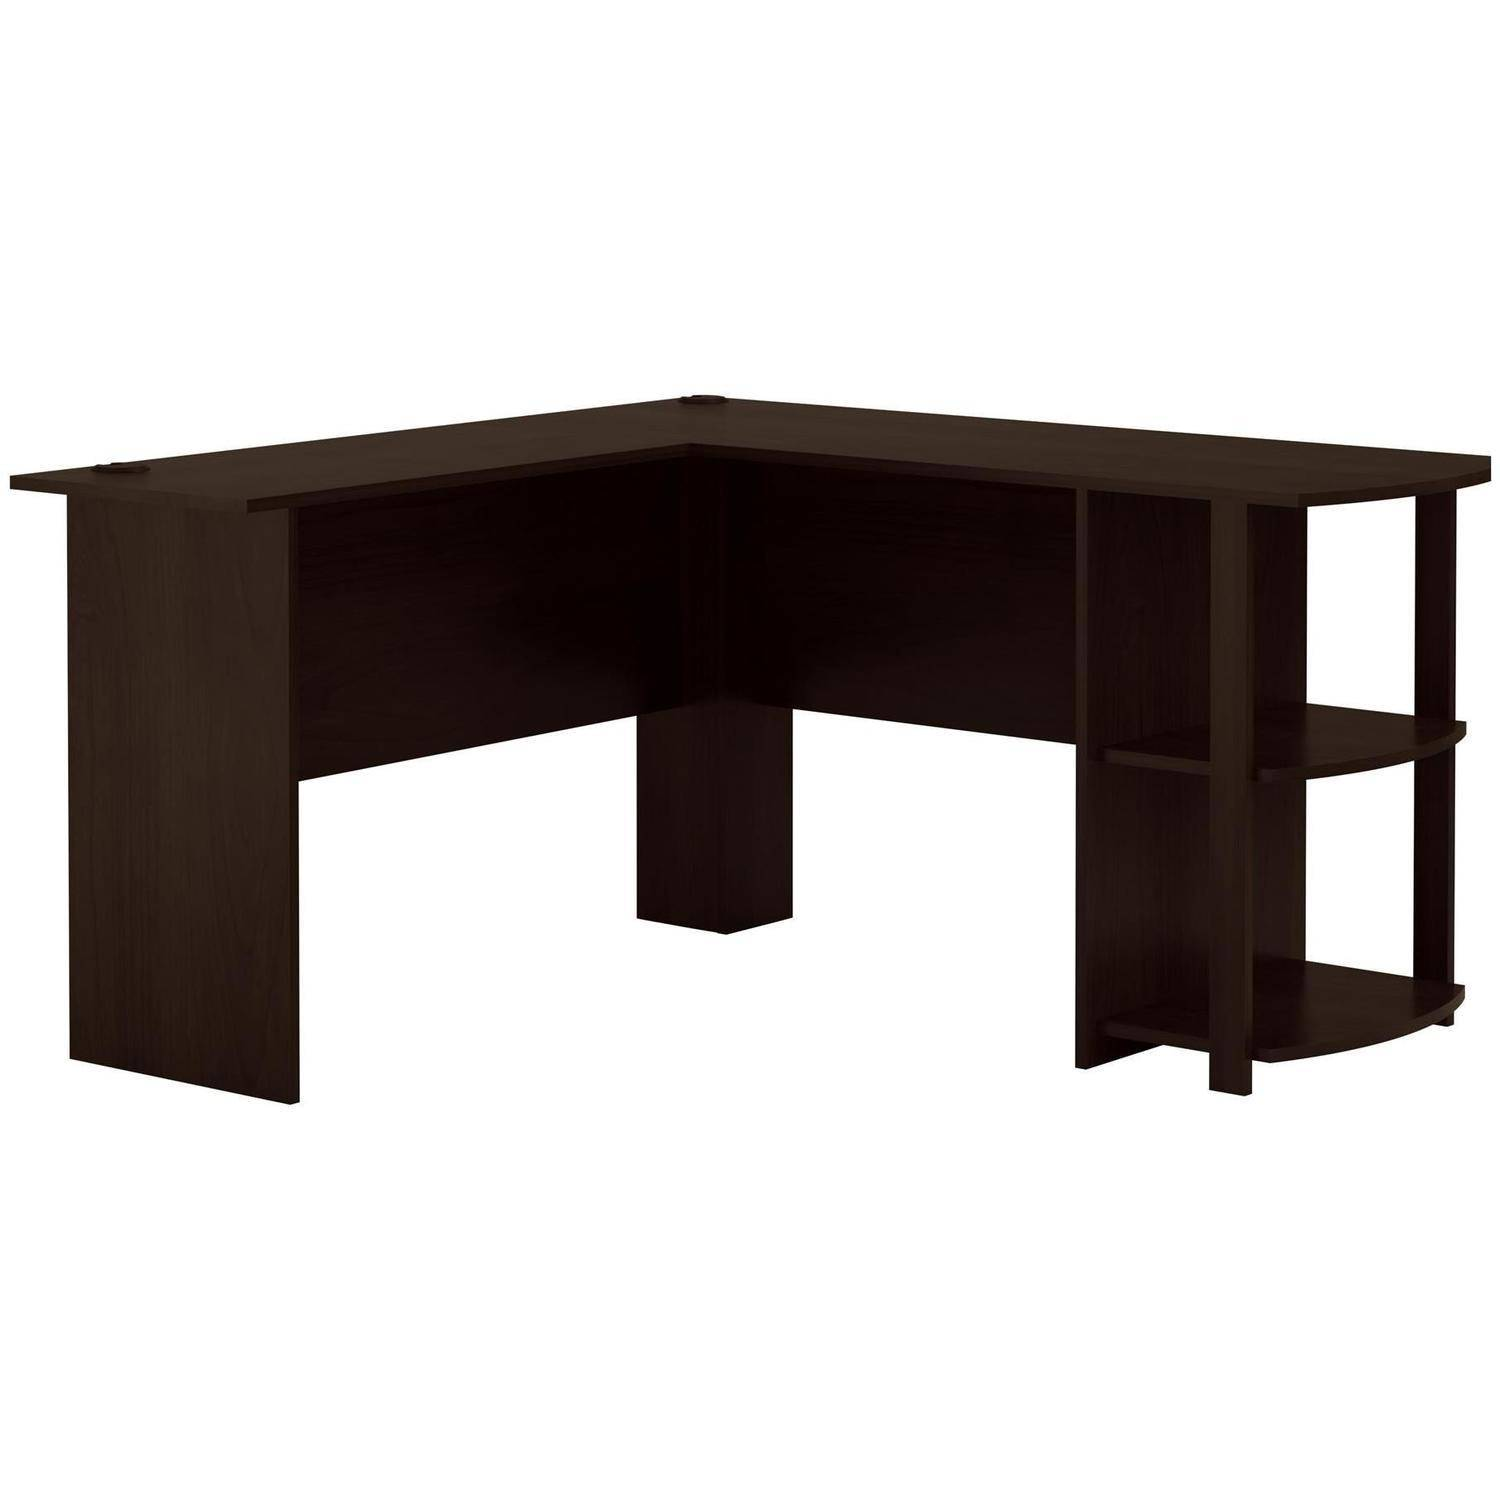 Home Office L Shaped Desk l-shaped desk with side storage, multiple finishes - walmart